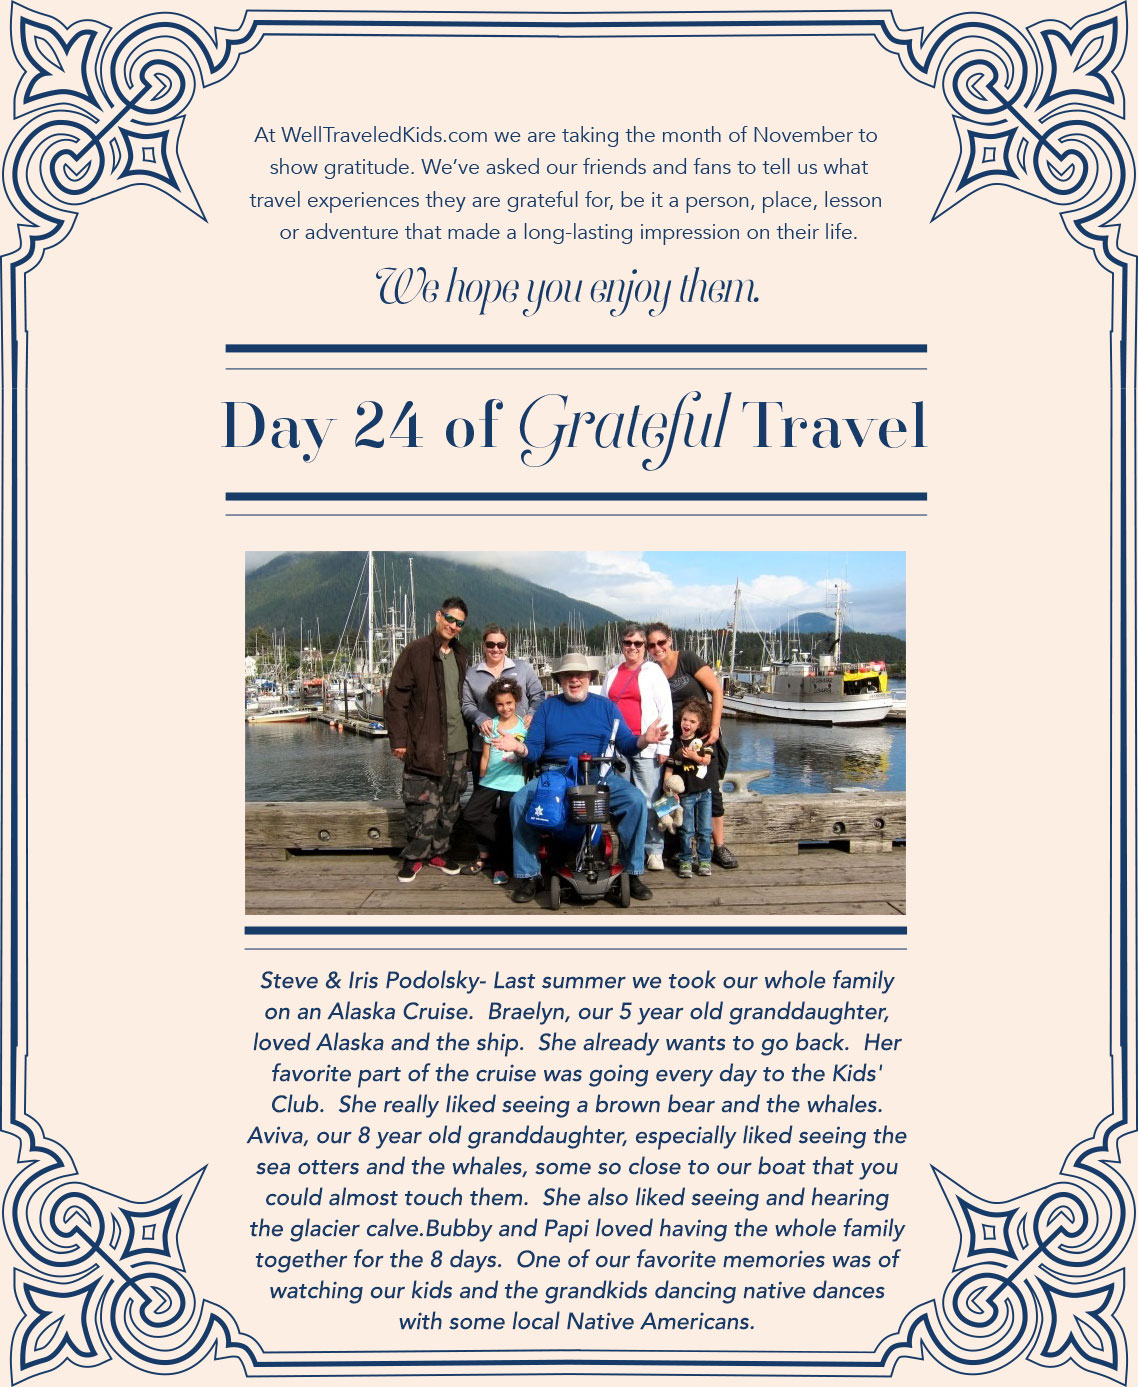 GratefulTravel_Day_24